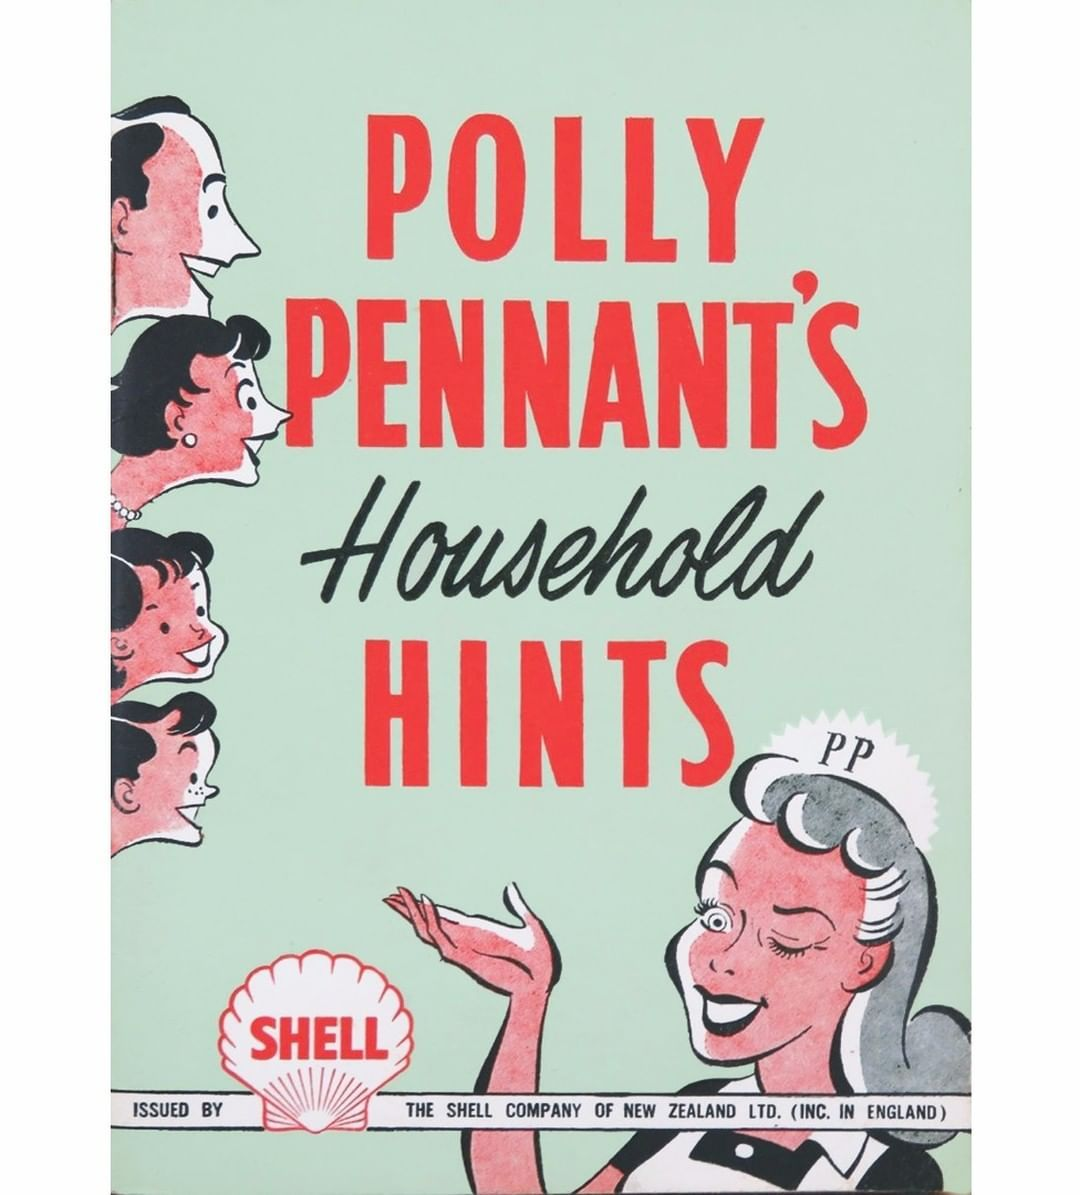 Polly Pennant's book of Household Hints, designer and era unknown. Polly was a mascot (but far from the only one) of the Shell Company in New Zealand. Paragon Publishing's 'Stitch' ran a hints 'column' by her from around 1951-1953; really they were glorified adverts to sell what would normally be seen as a masculine brand of products to a female audience via a craft magazine. Polly also appeared with her fake help column in smaller and independent fundraising cookbooks; so she was definitely cre #cookingandhouseholdhints